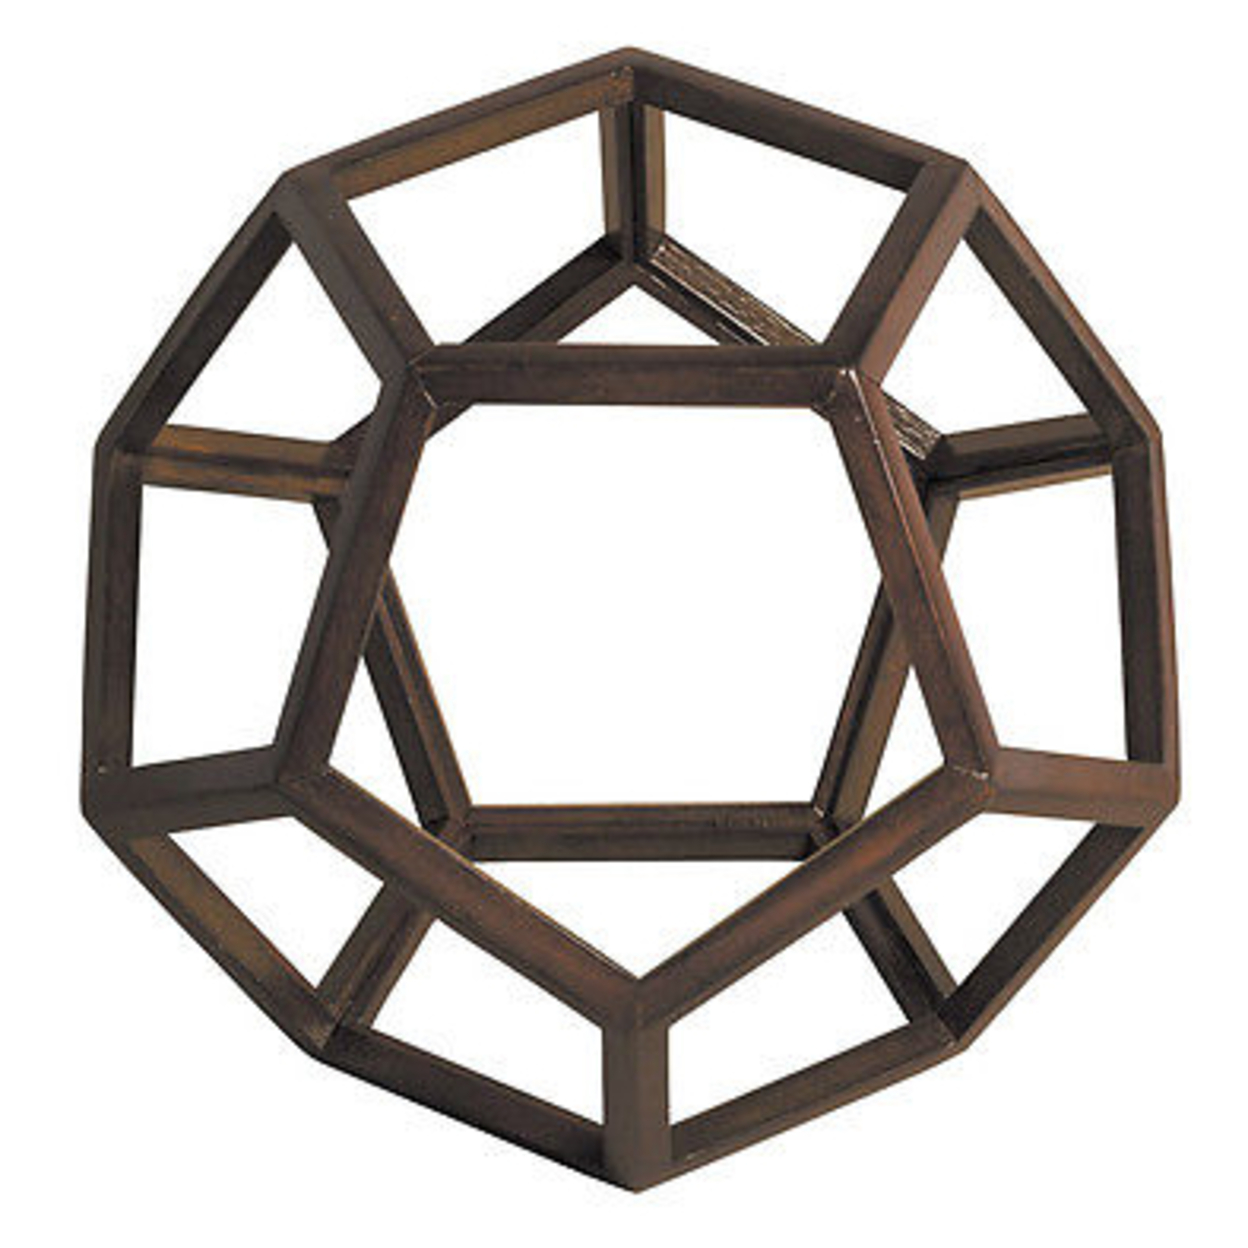 "Dodecahedron 3D Geometric Ether Wooden Model 9"" Polyhedron Office Home Accent 55b69a57a2771c7c258b61ee"